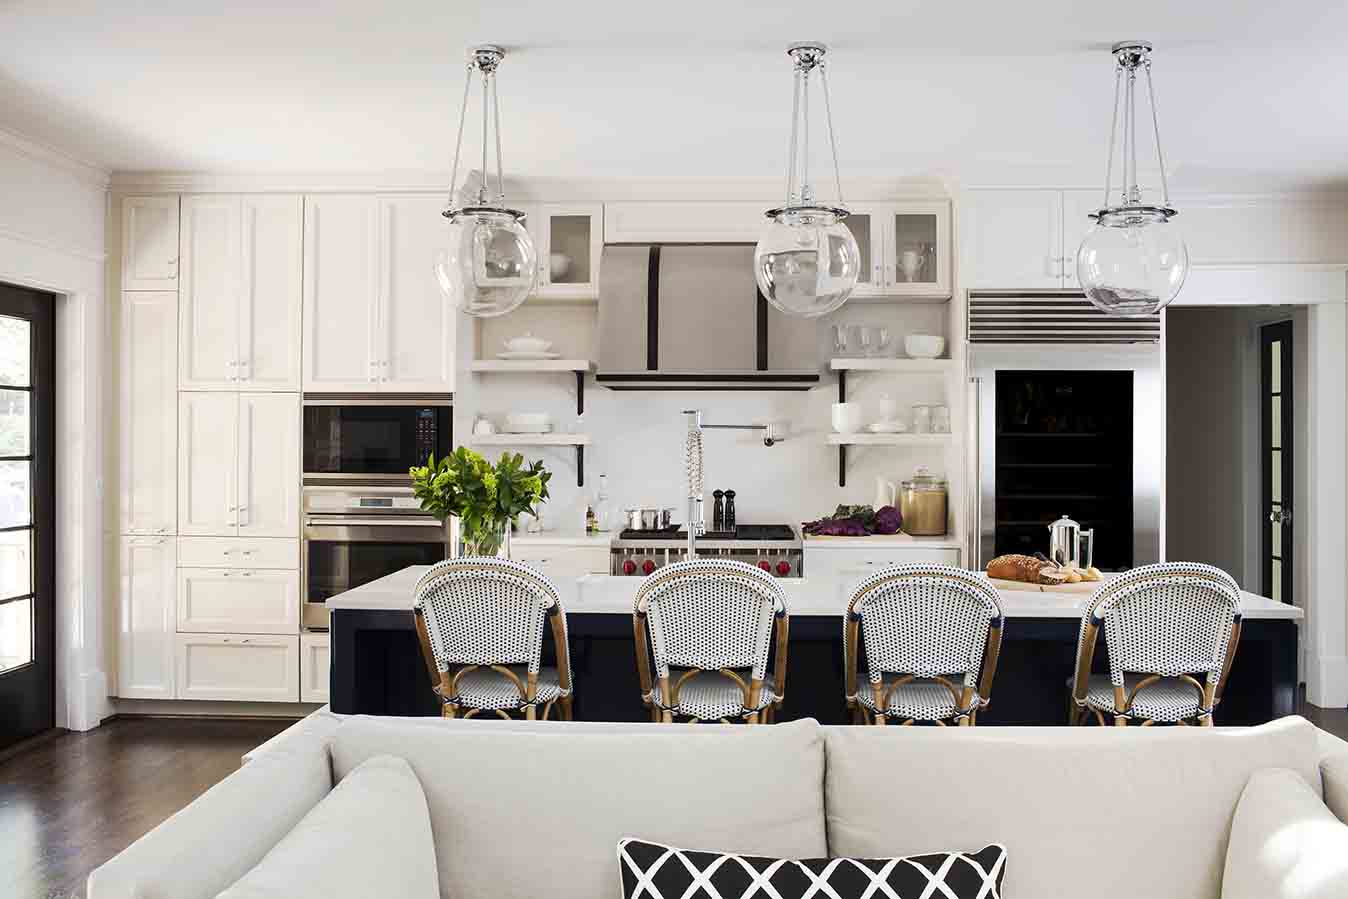 Home Awarded Bronze Award For Best Residence Under 3500 Square Feet Recognized By ASID American Society Of Interior Designers